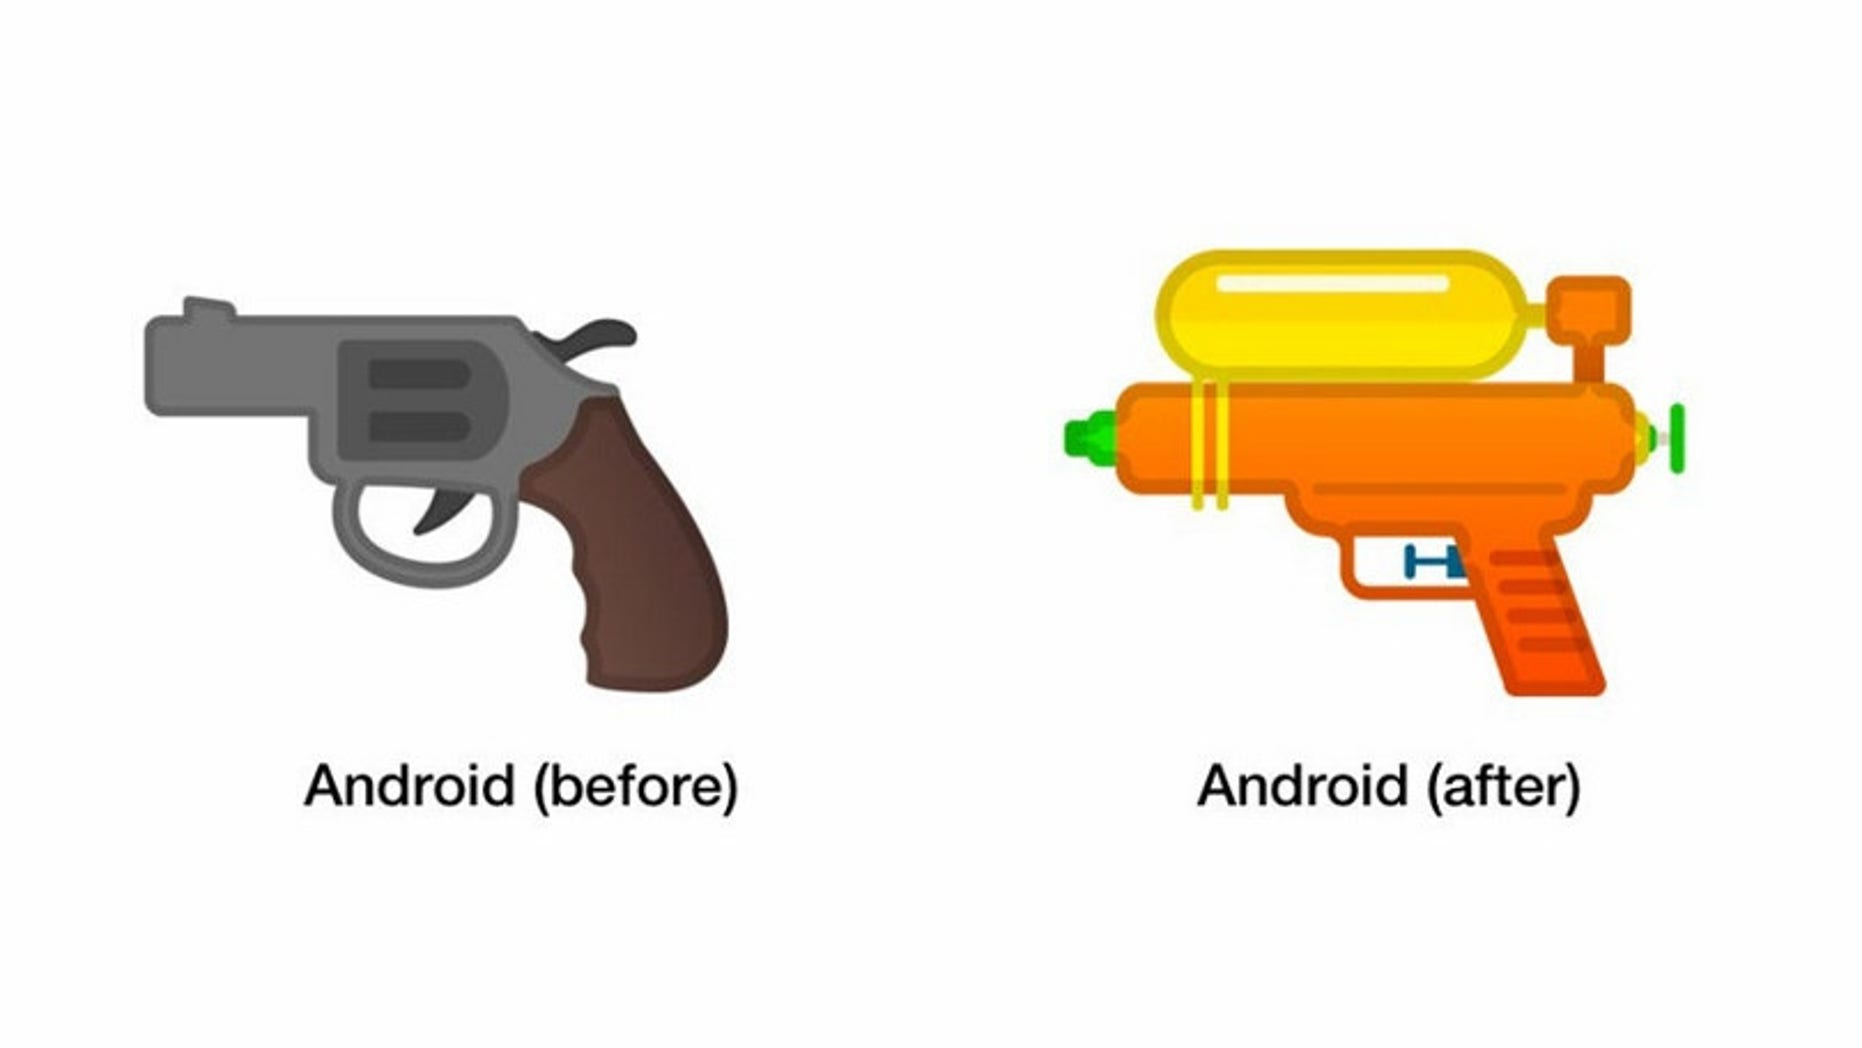 Google Swaps Gun Emoji For A Water Pistol Fox News